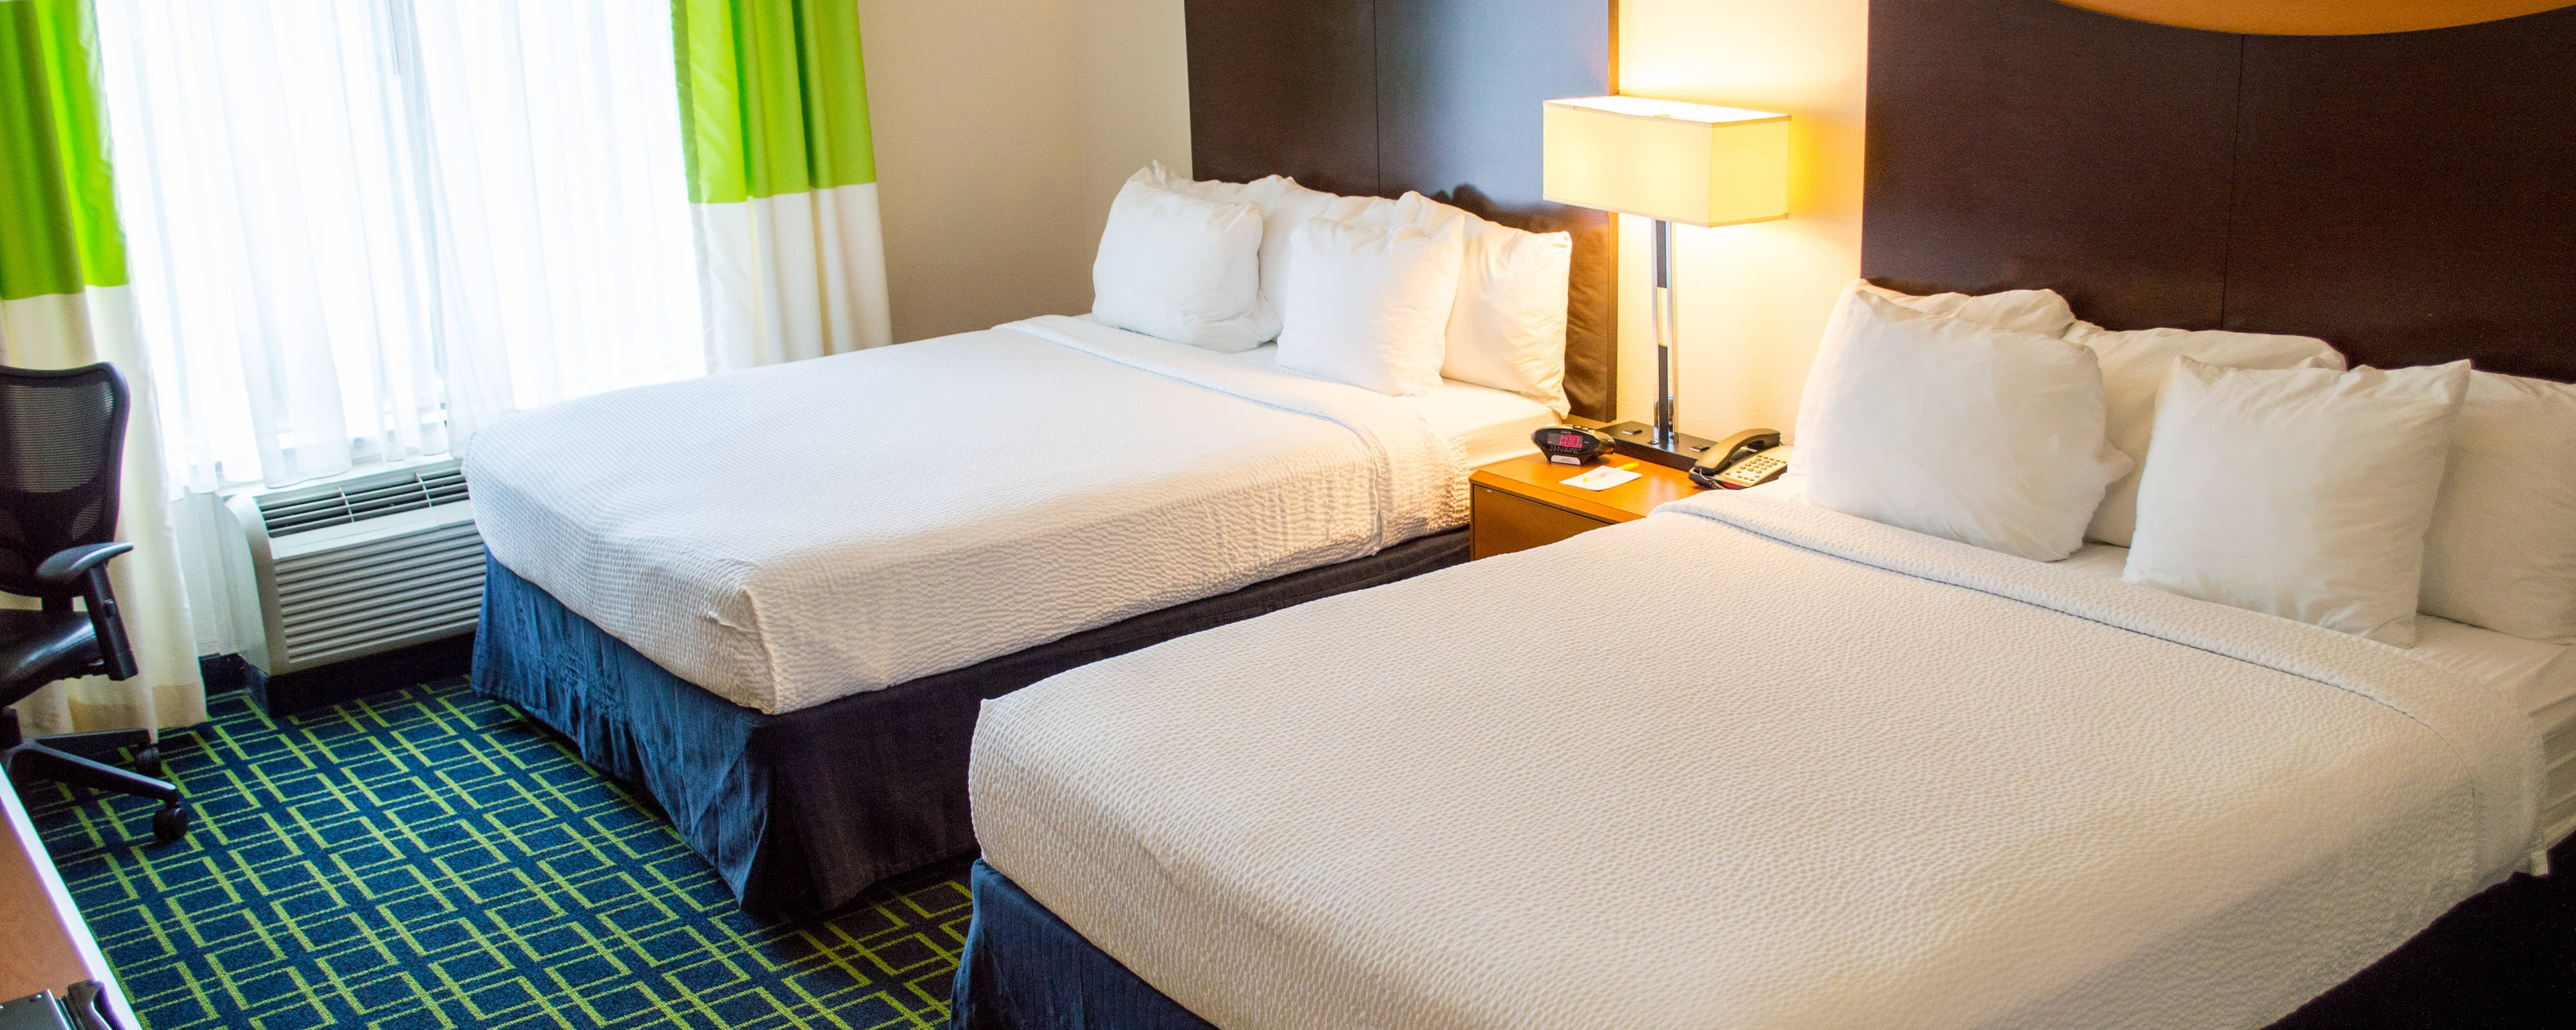 Farifield Inn And Suites North Close To Fiesta Texas Sea World And